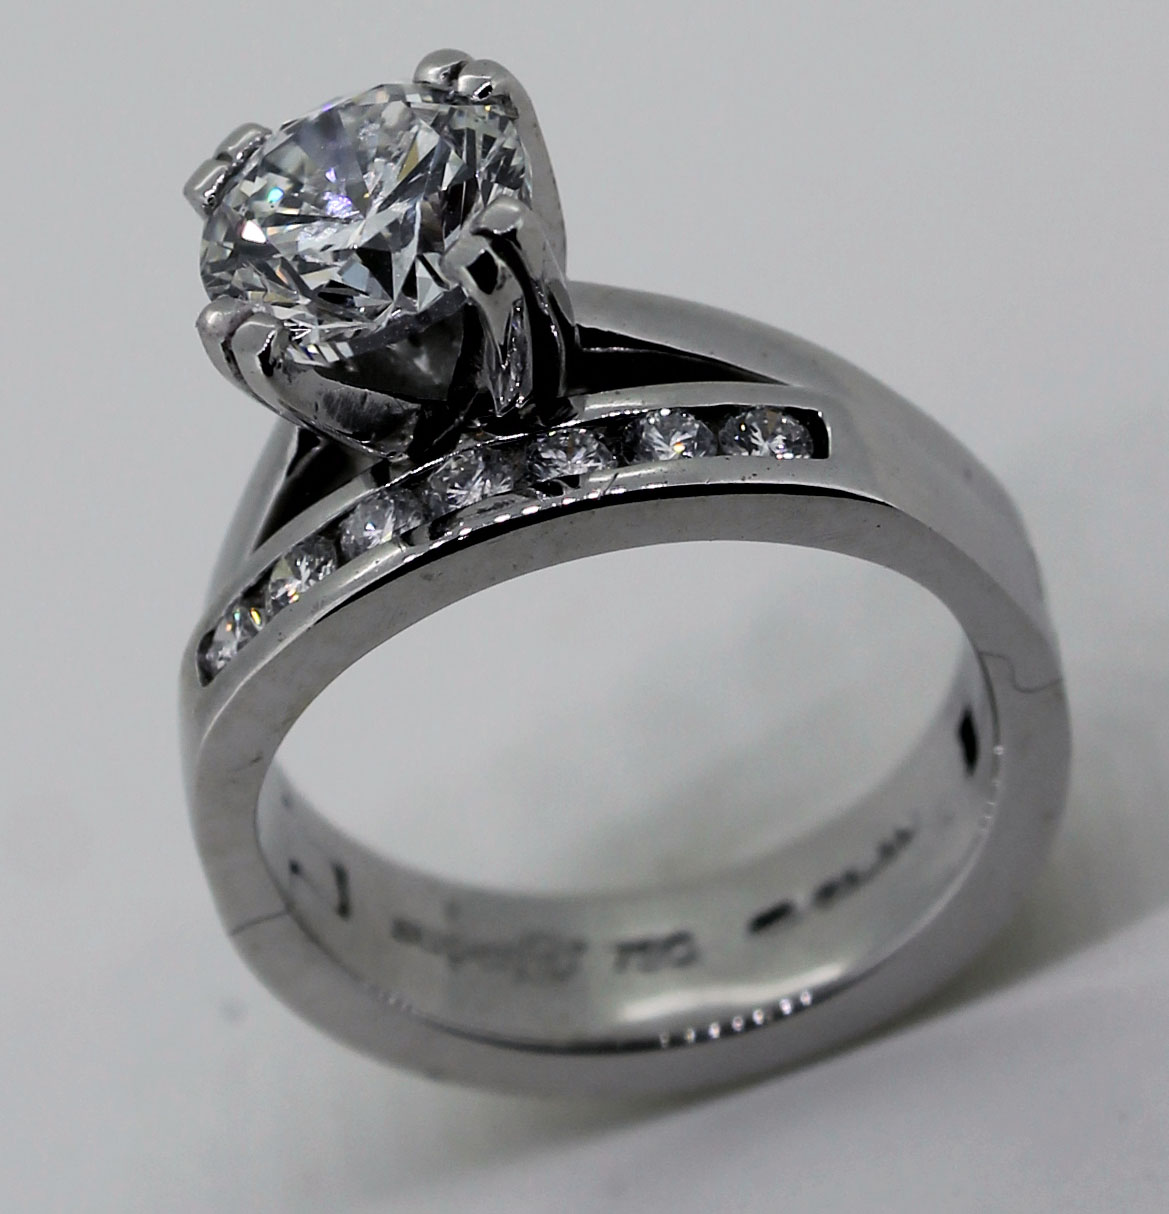 Diamond engagment and eternity ring on one Cliq band